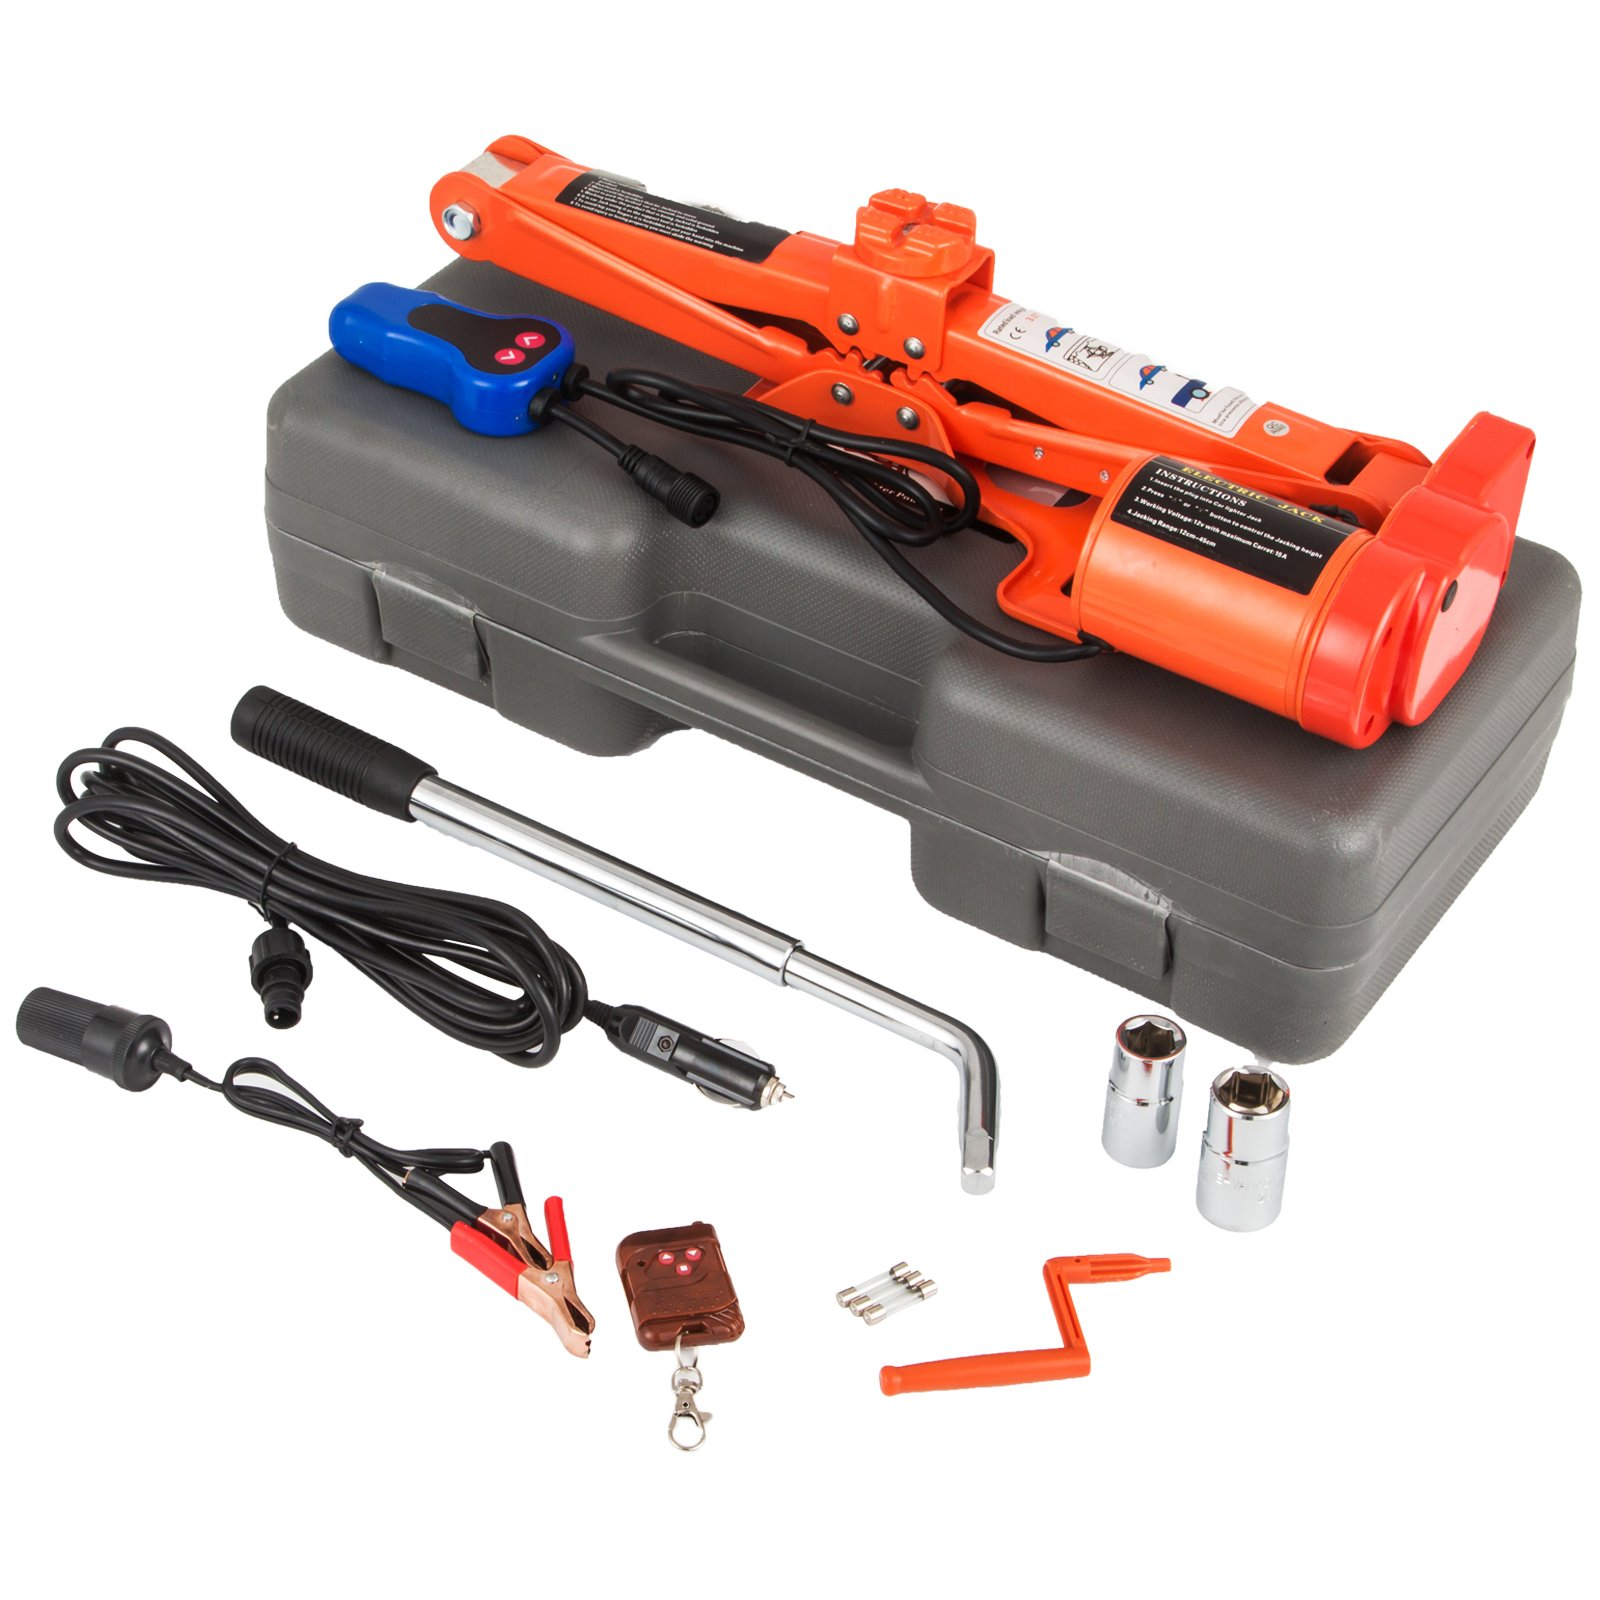 Mophorn 12V DC Electric Scissor Jack 3 Ton 6000LBS Automatic Electric Car Jack 120-450mm Remote Control Scissor Lift Jack (3T 6600LBS No Wrench)